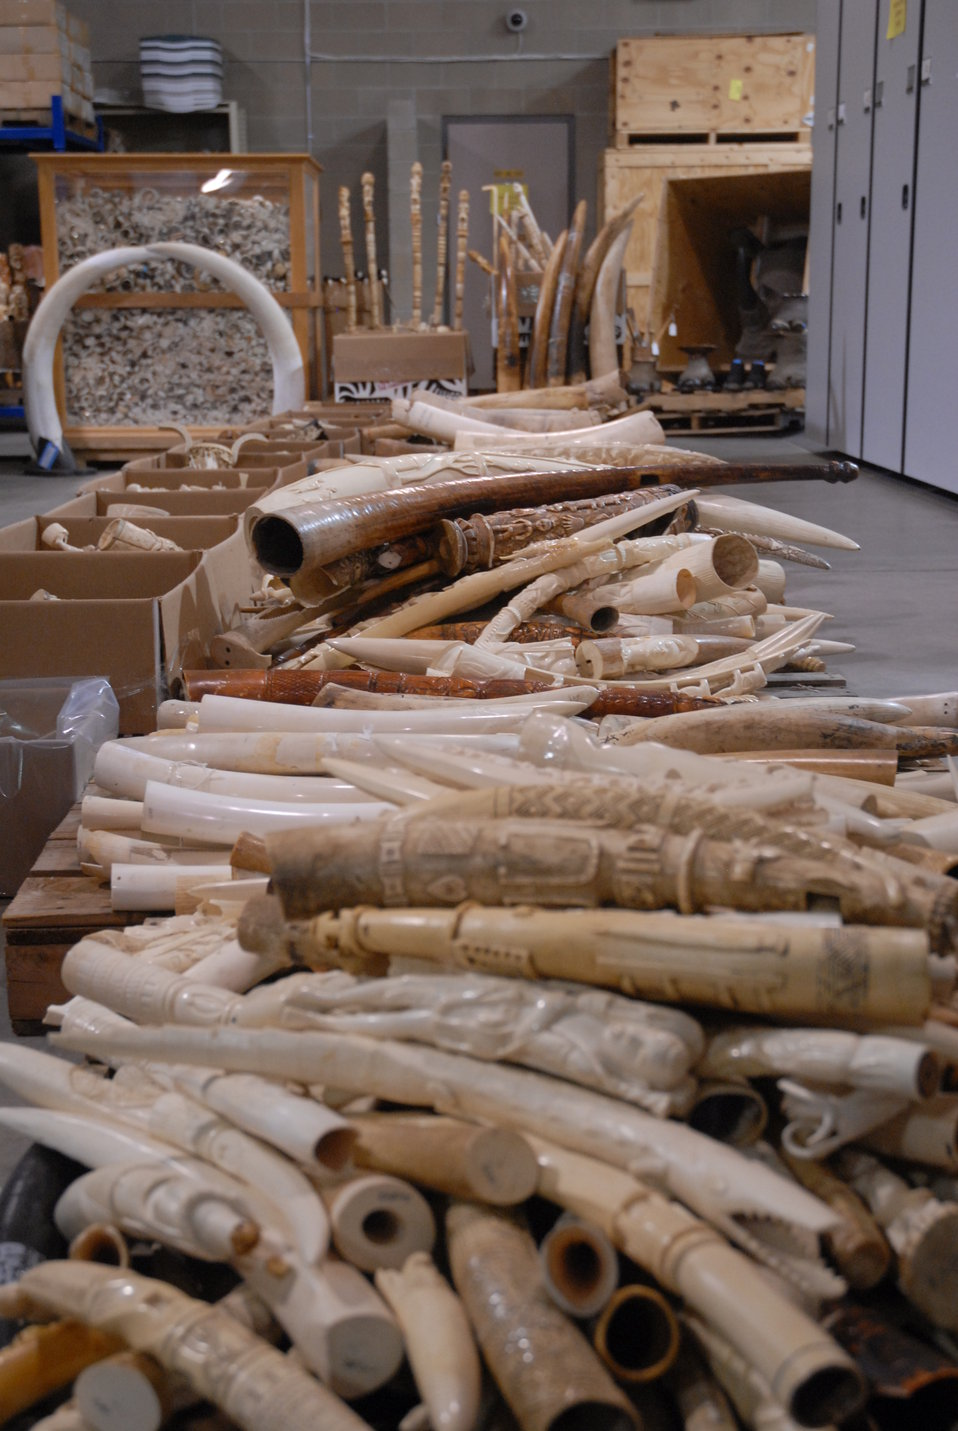 Carved ivory tusk stockpile slated for destruction in the crush.